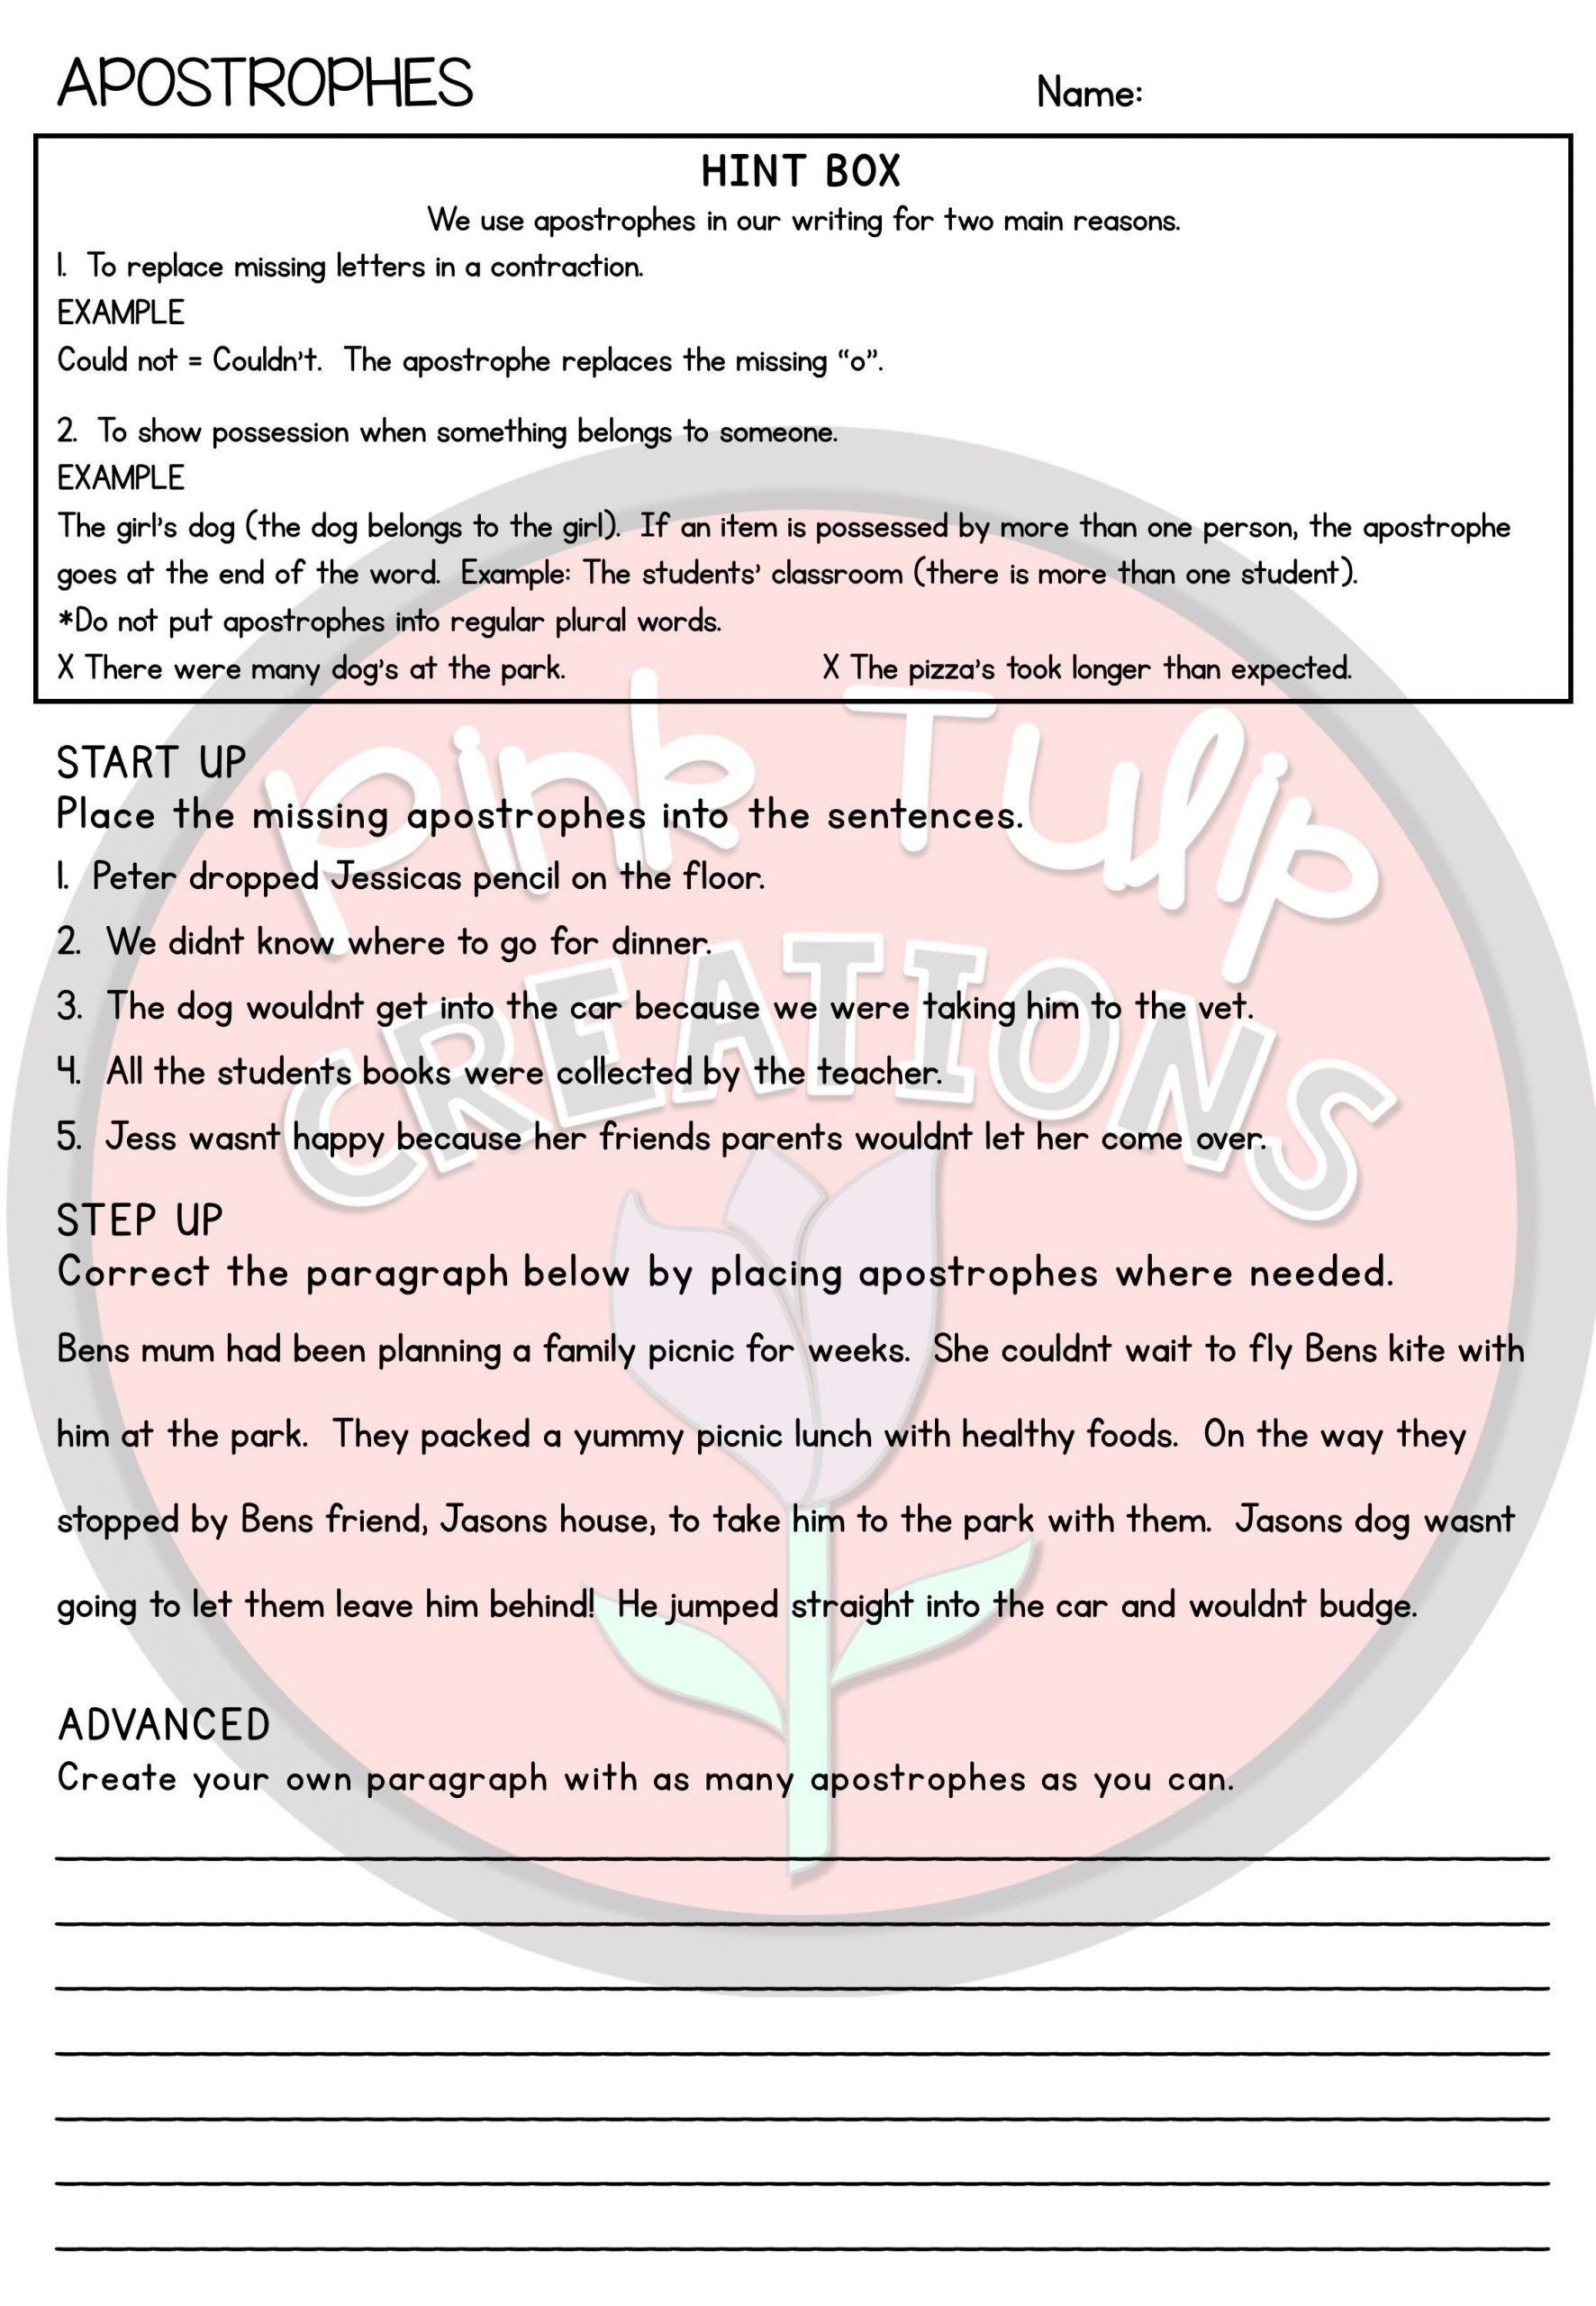 Drawing Conclusions Worksheets 5th Grade Drawing Conclusions Worksheets 5th Grade Grammar Worksheet